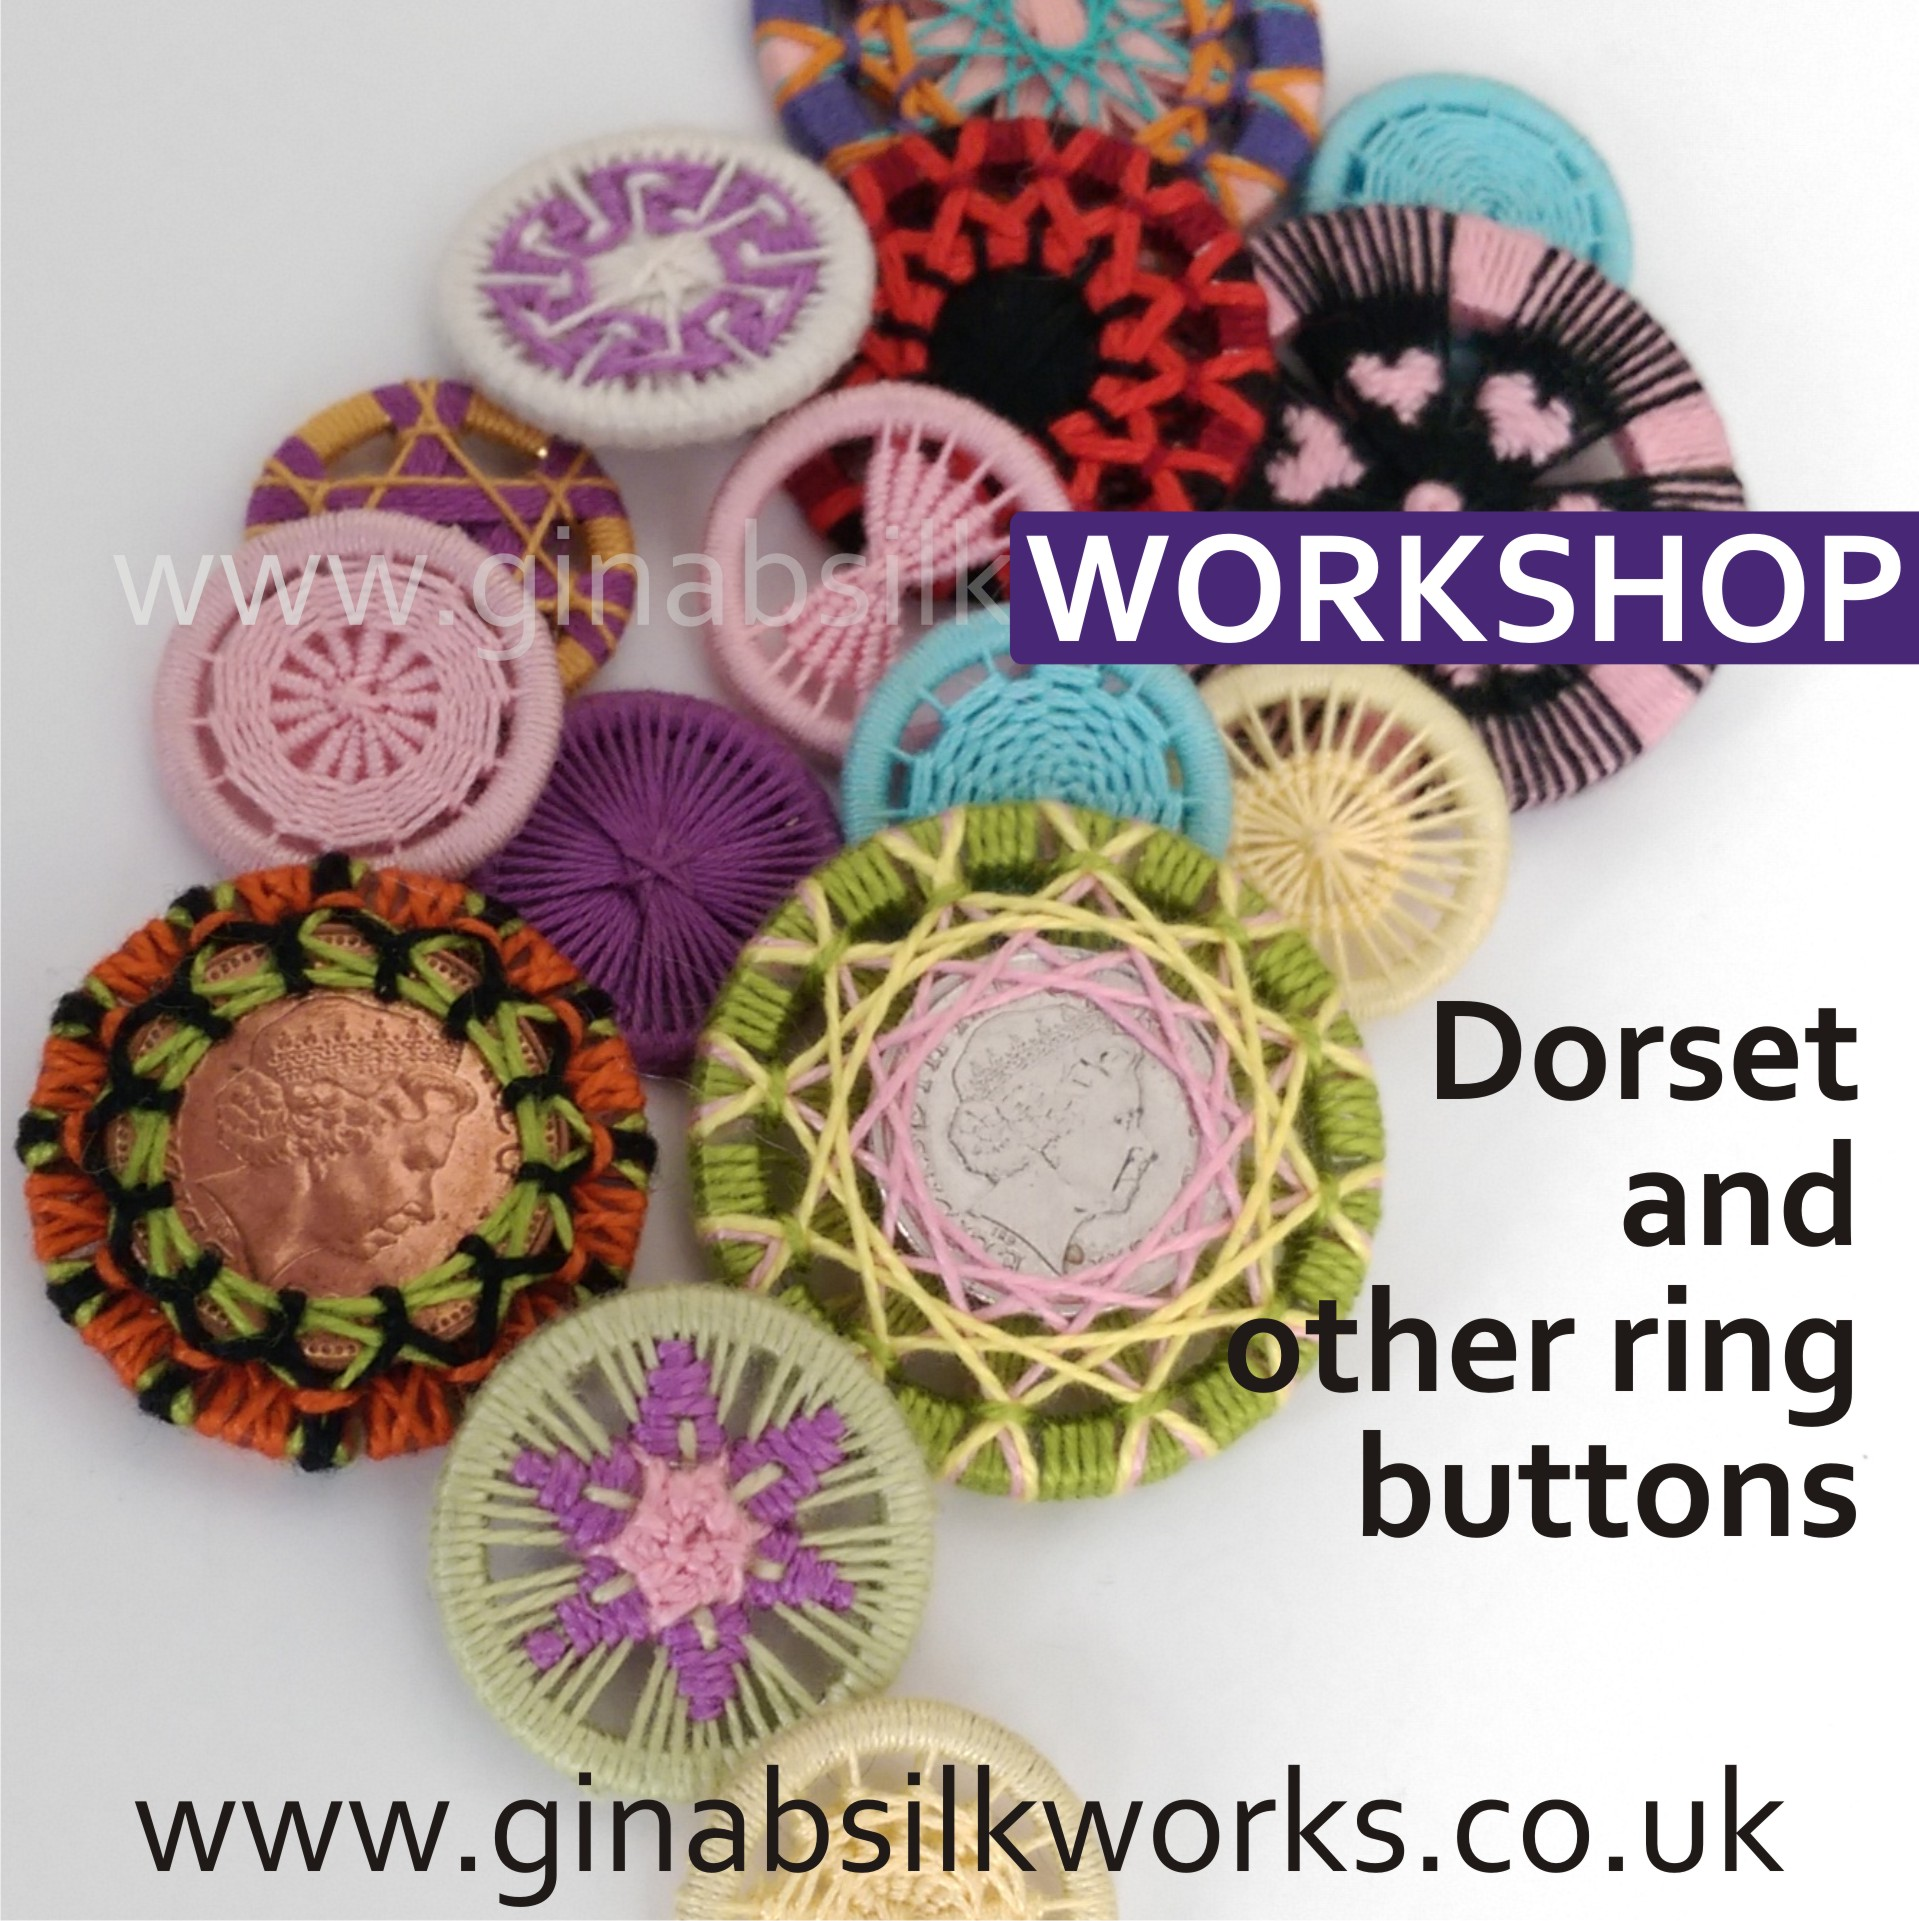 Dorset & Other Ring Buttons Workshop